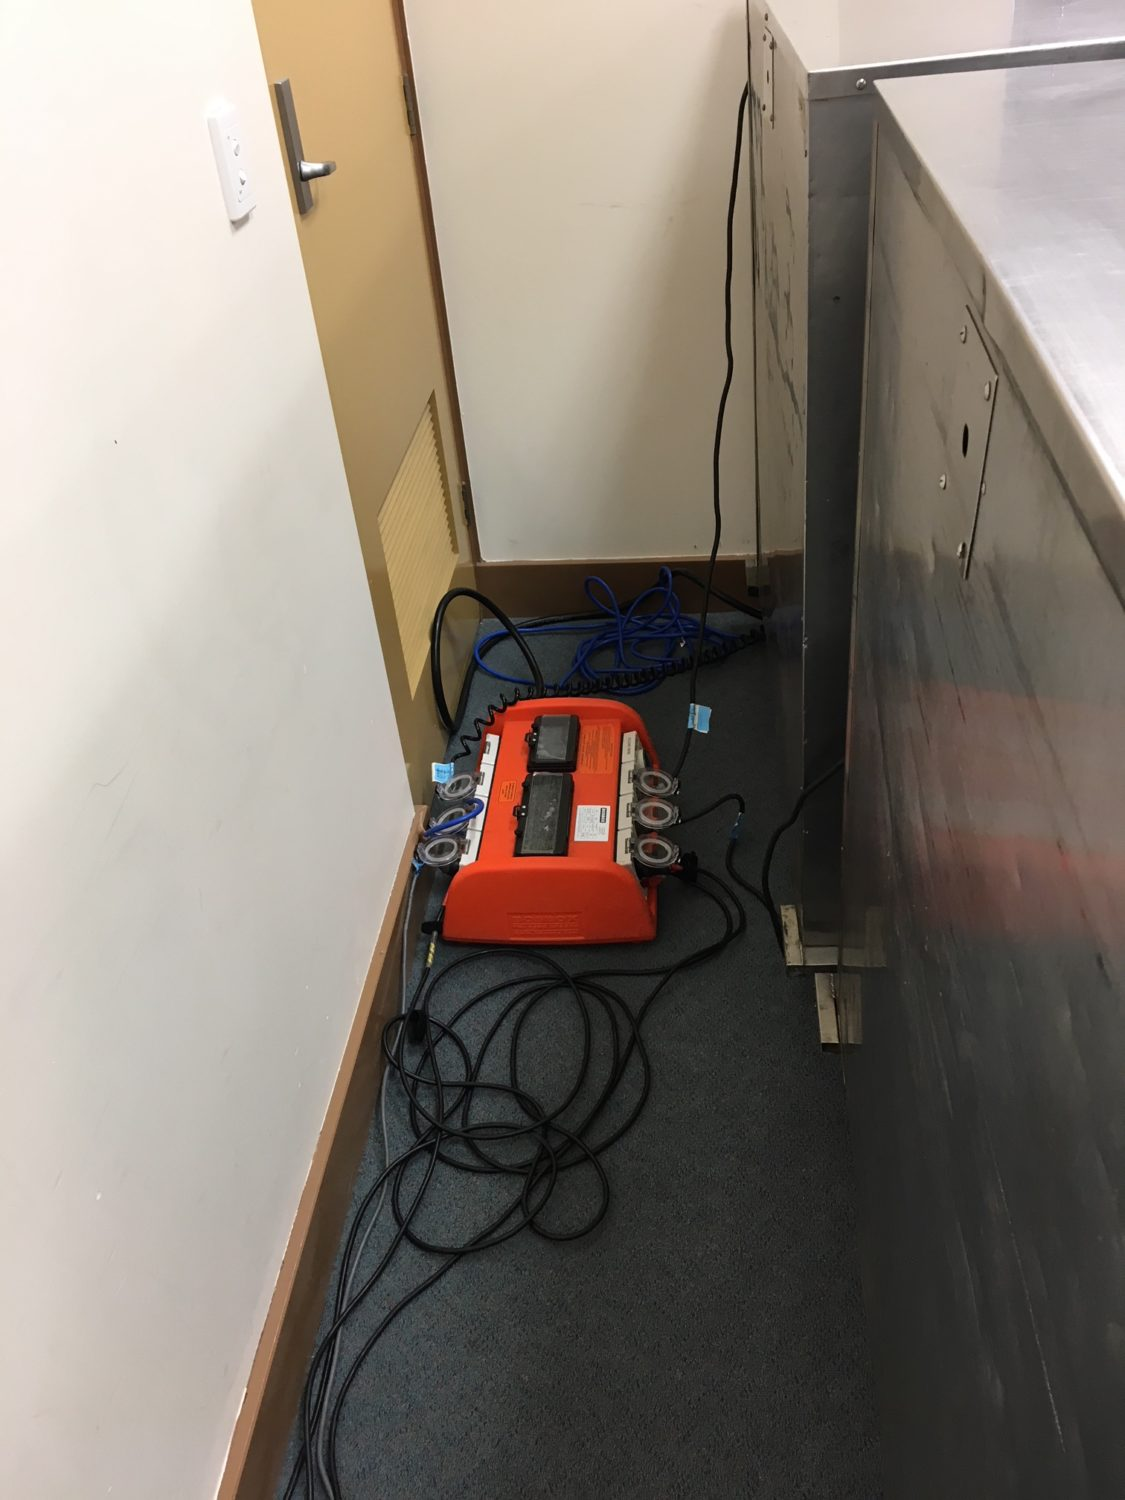 Mini power board tucked behind some cabinets